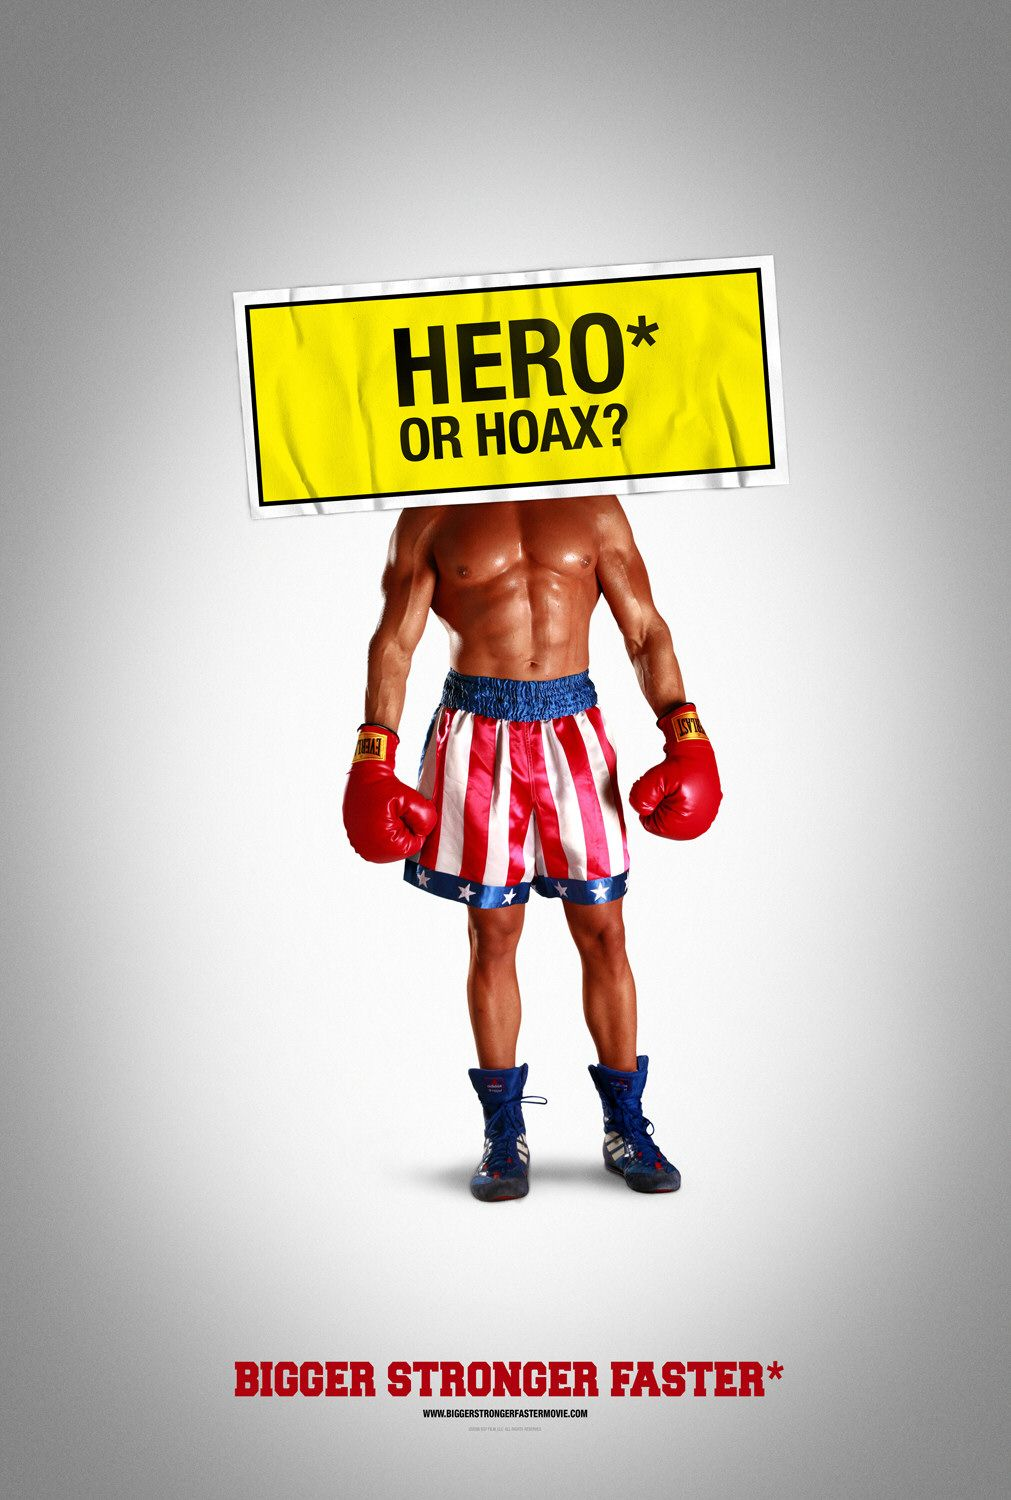 bigger faster stronger essay In 2005 congress spent 151 days in session and 8 of those they spent debating the use of steroids according to the centers for disease control and prevention anabolic steroids kills 3 people a year and is #142 in top killers.